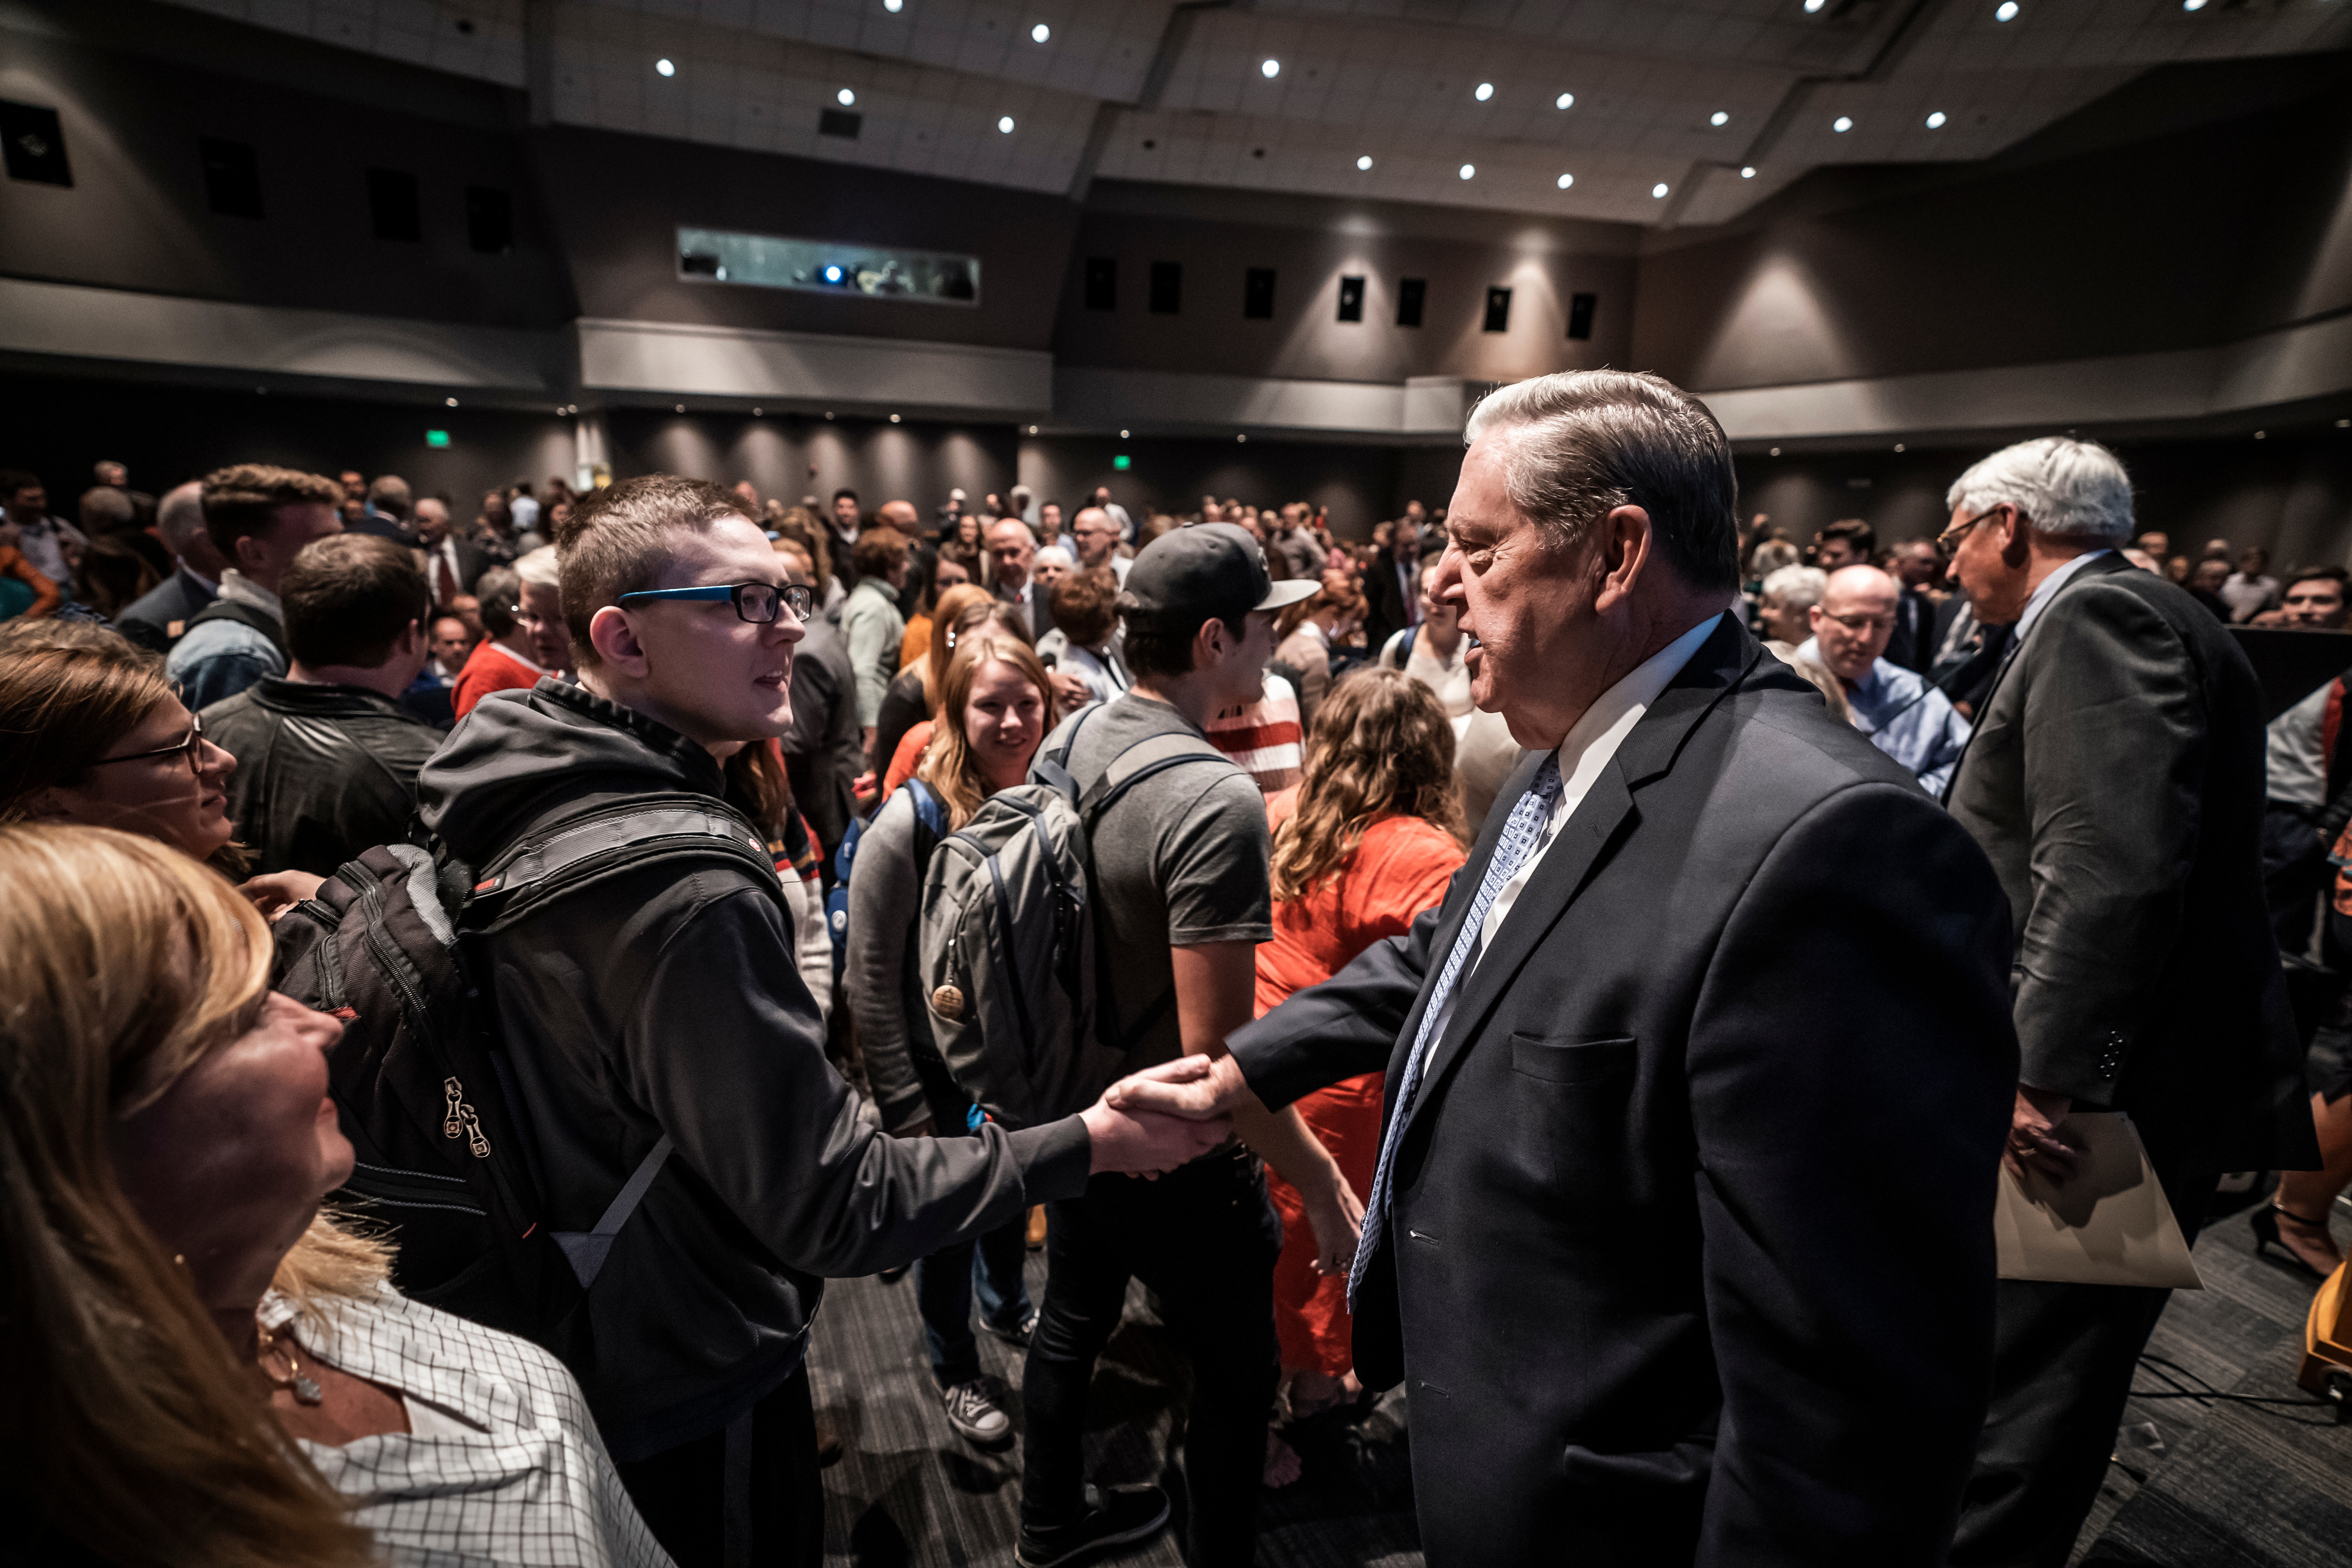 Elder Jeffrey R. Holland greets former BYU Jerusalem Center students during the 30th anniversary of the dedication of the BYU Jerusalem Center on Oct. 11, 2019, in the Joseph Smith Building Auditorium on the BYU campus in Provo, Utah.